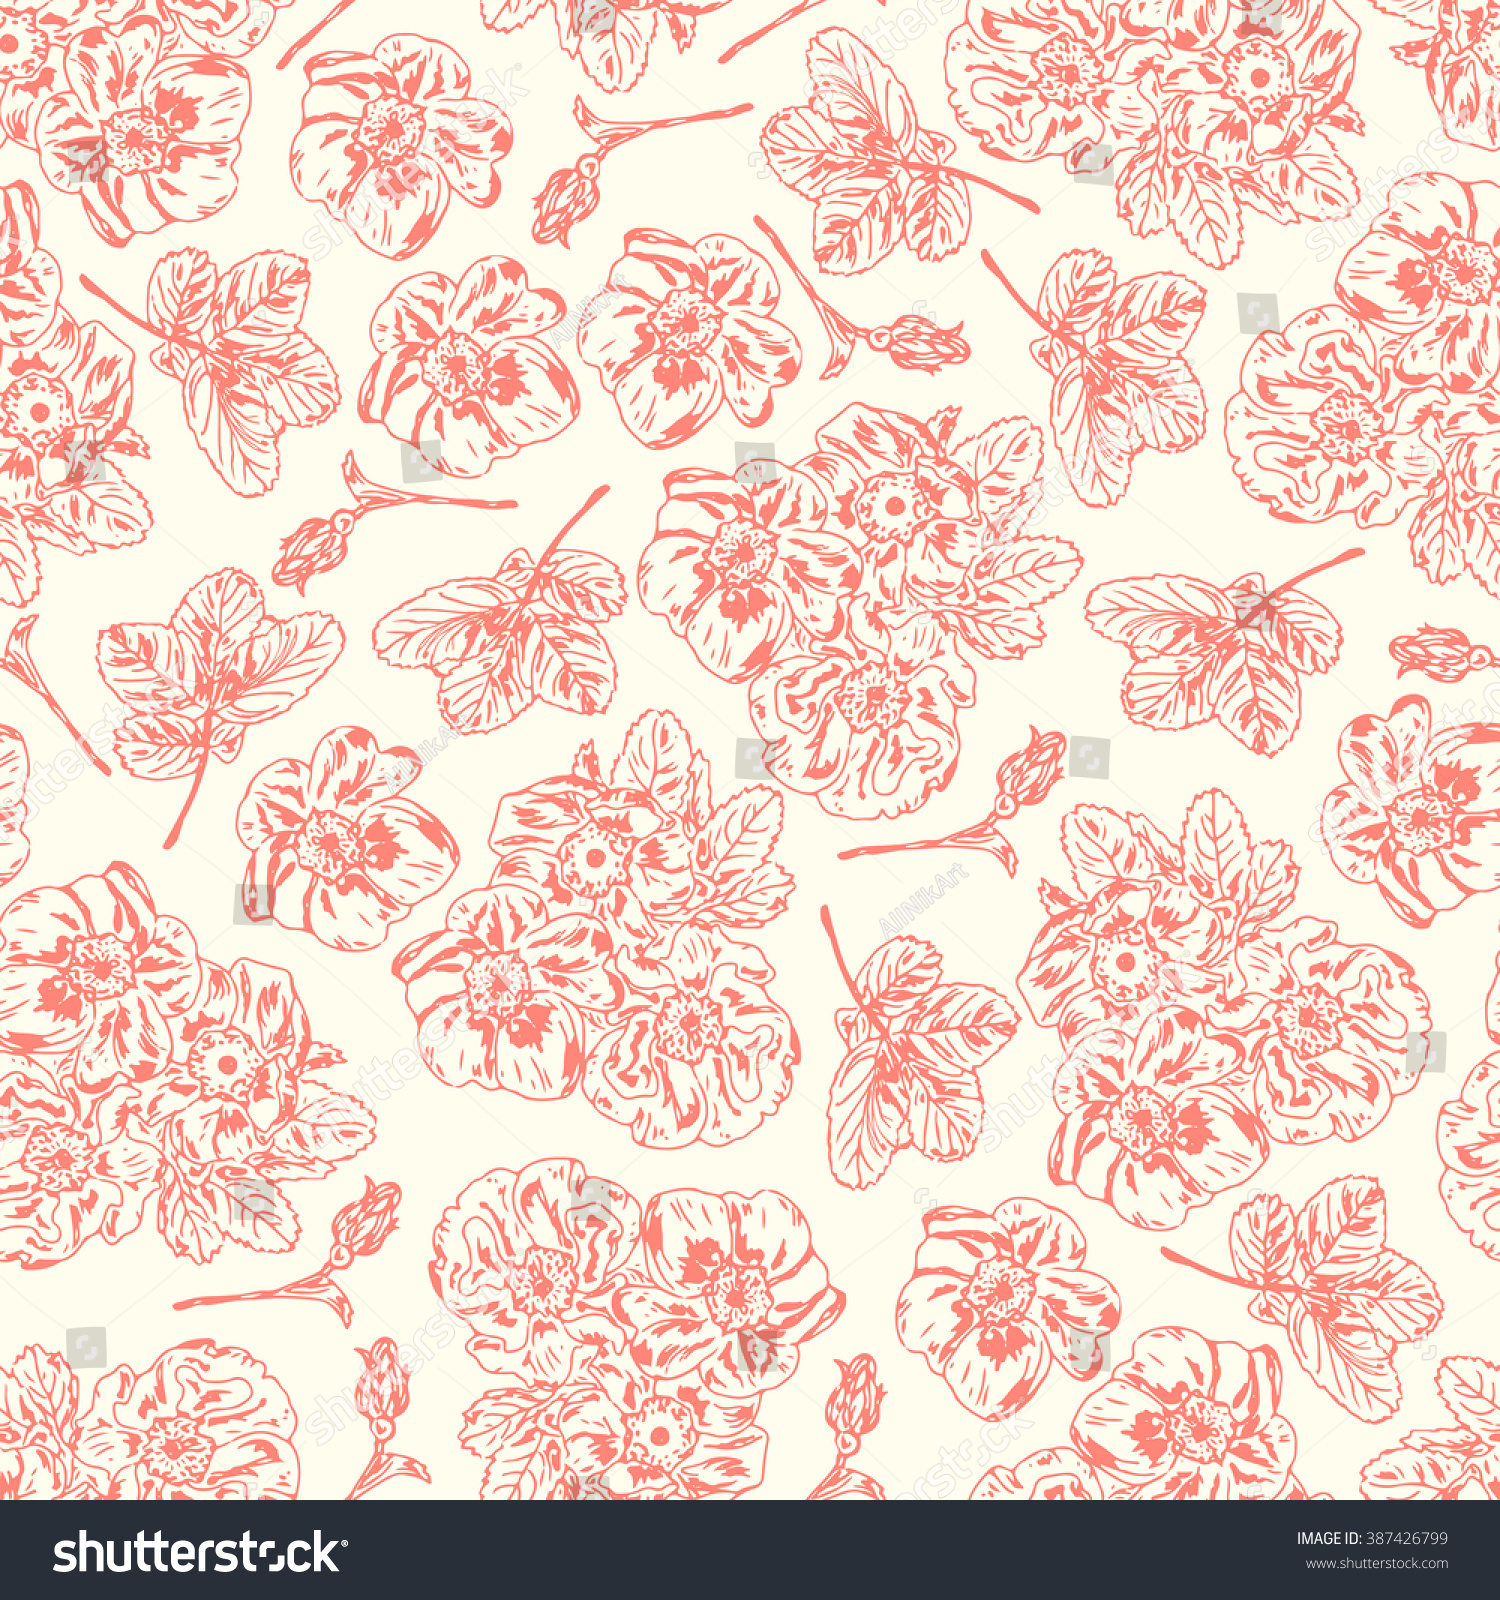 Flowers Pink Vintage Floral Background Floral Stock Vector